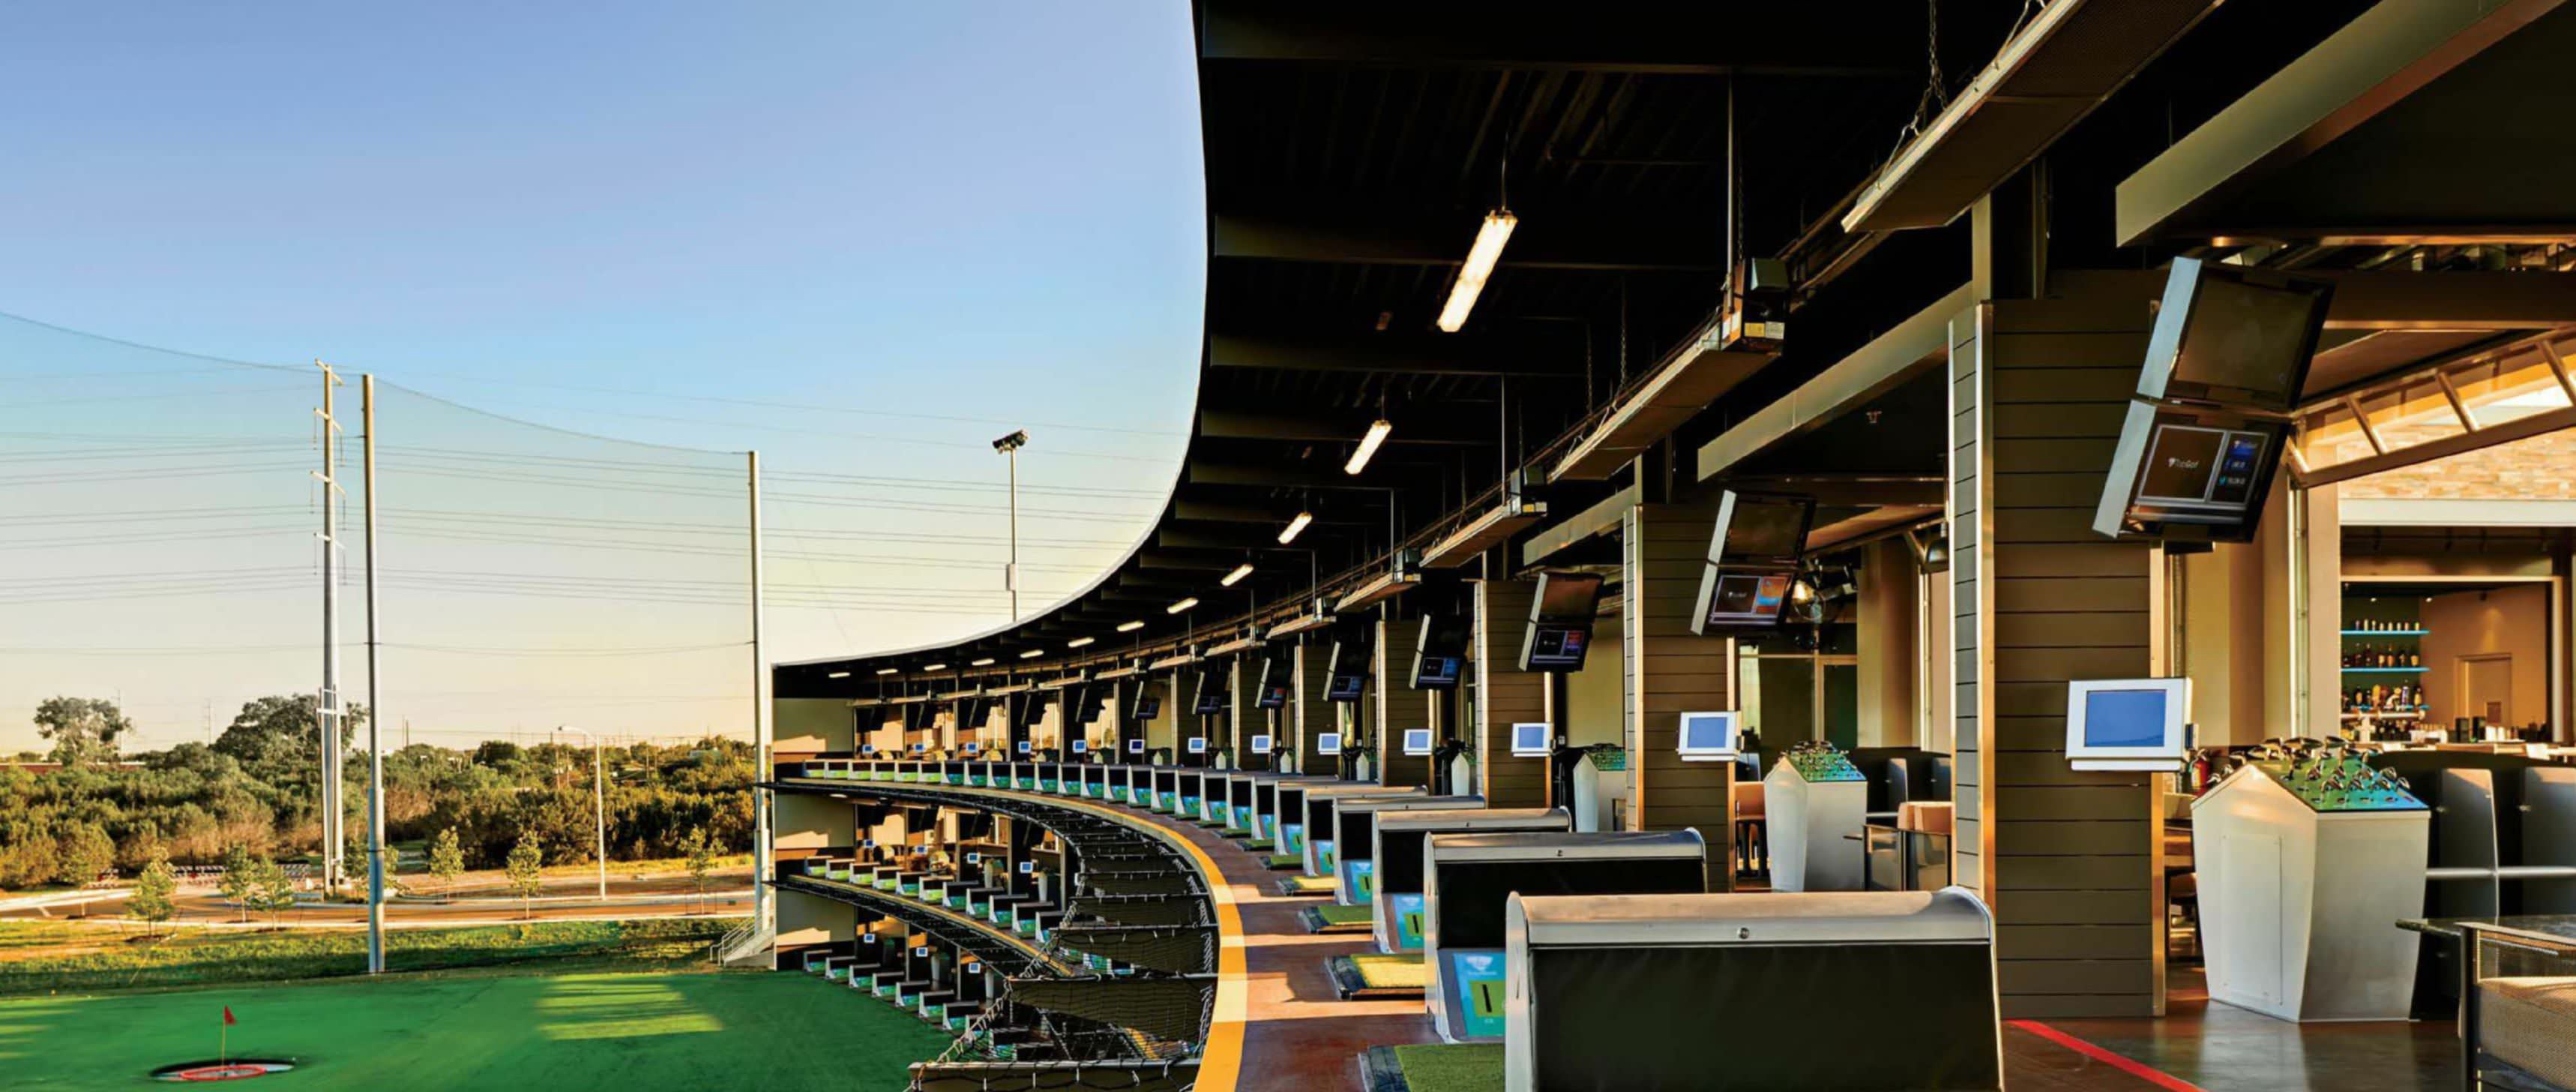 How Topgolf Reached The Top